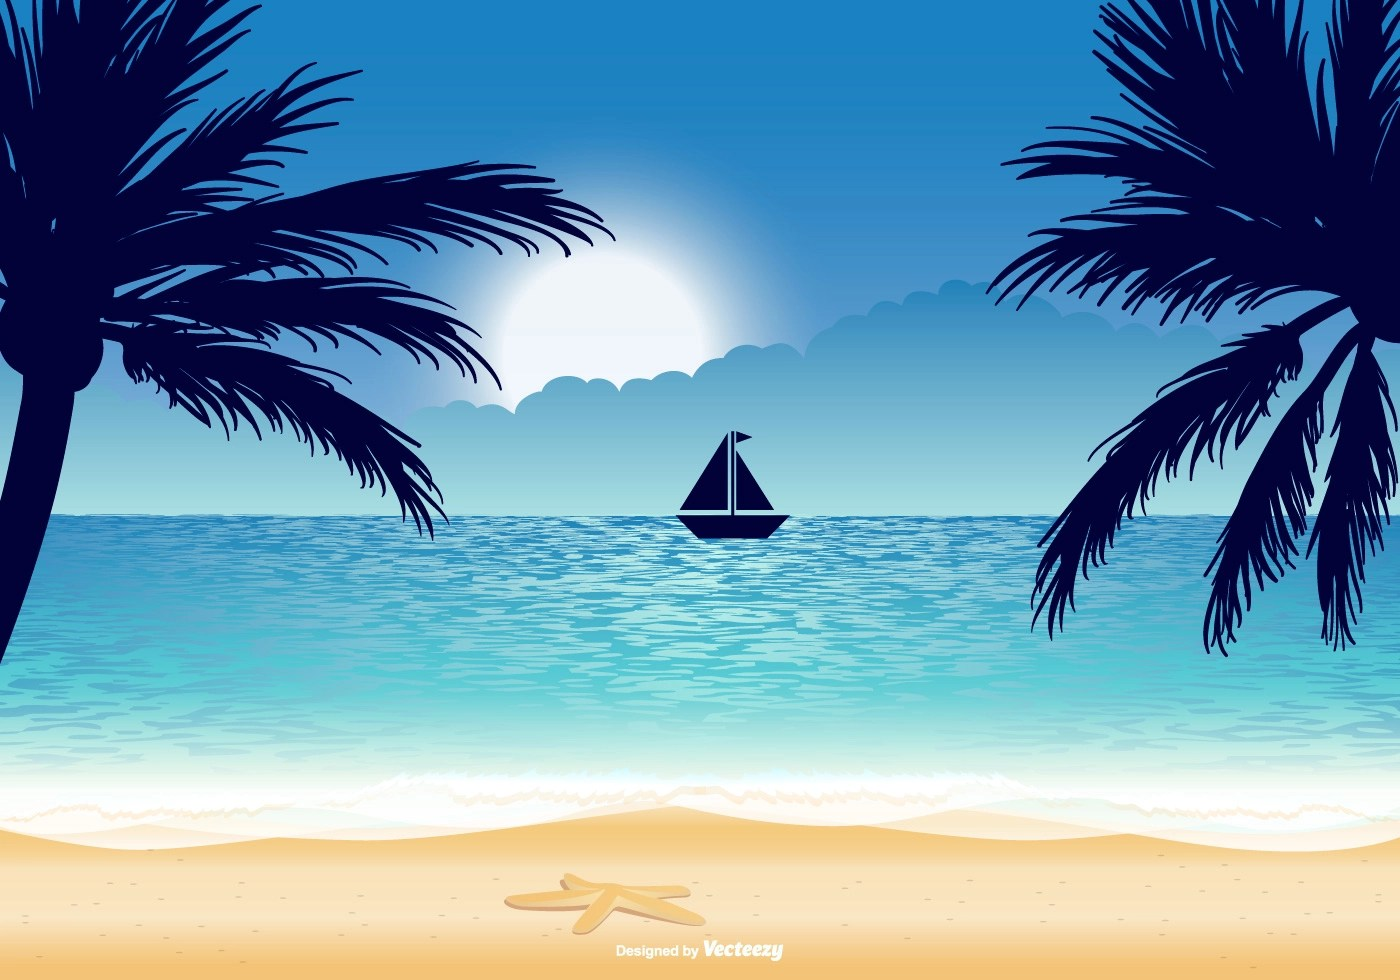 flip flop chair office carpet protector uk beautiful beach illustration - download free vector art, stock graphics & images